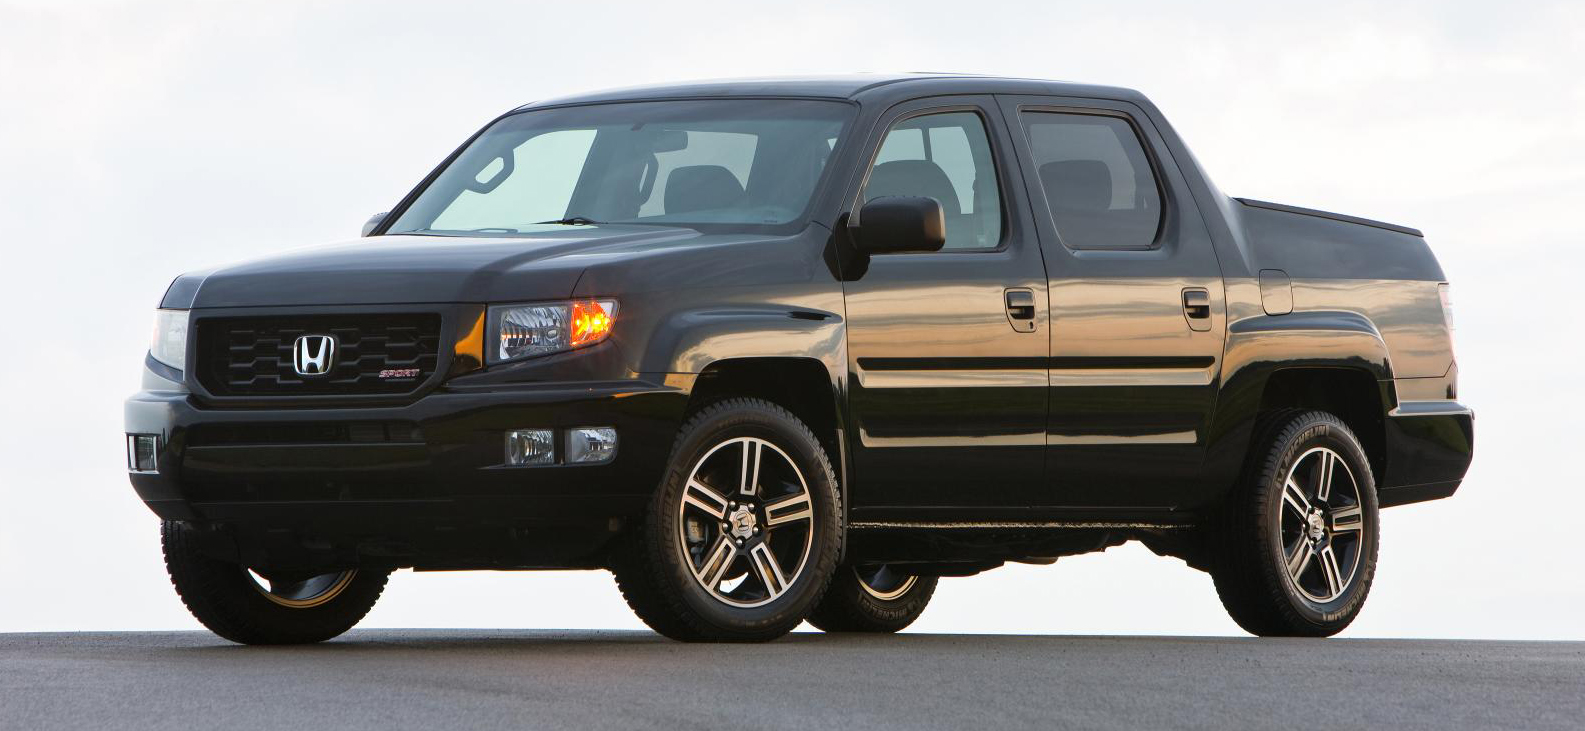 2014 honda ridgeline adds new top of the line special edition model. Black Bedroom Furniture Sets. Home Design Ideas